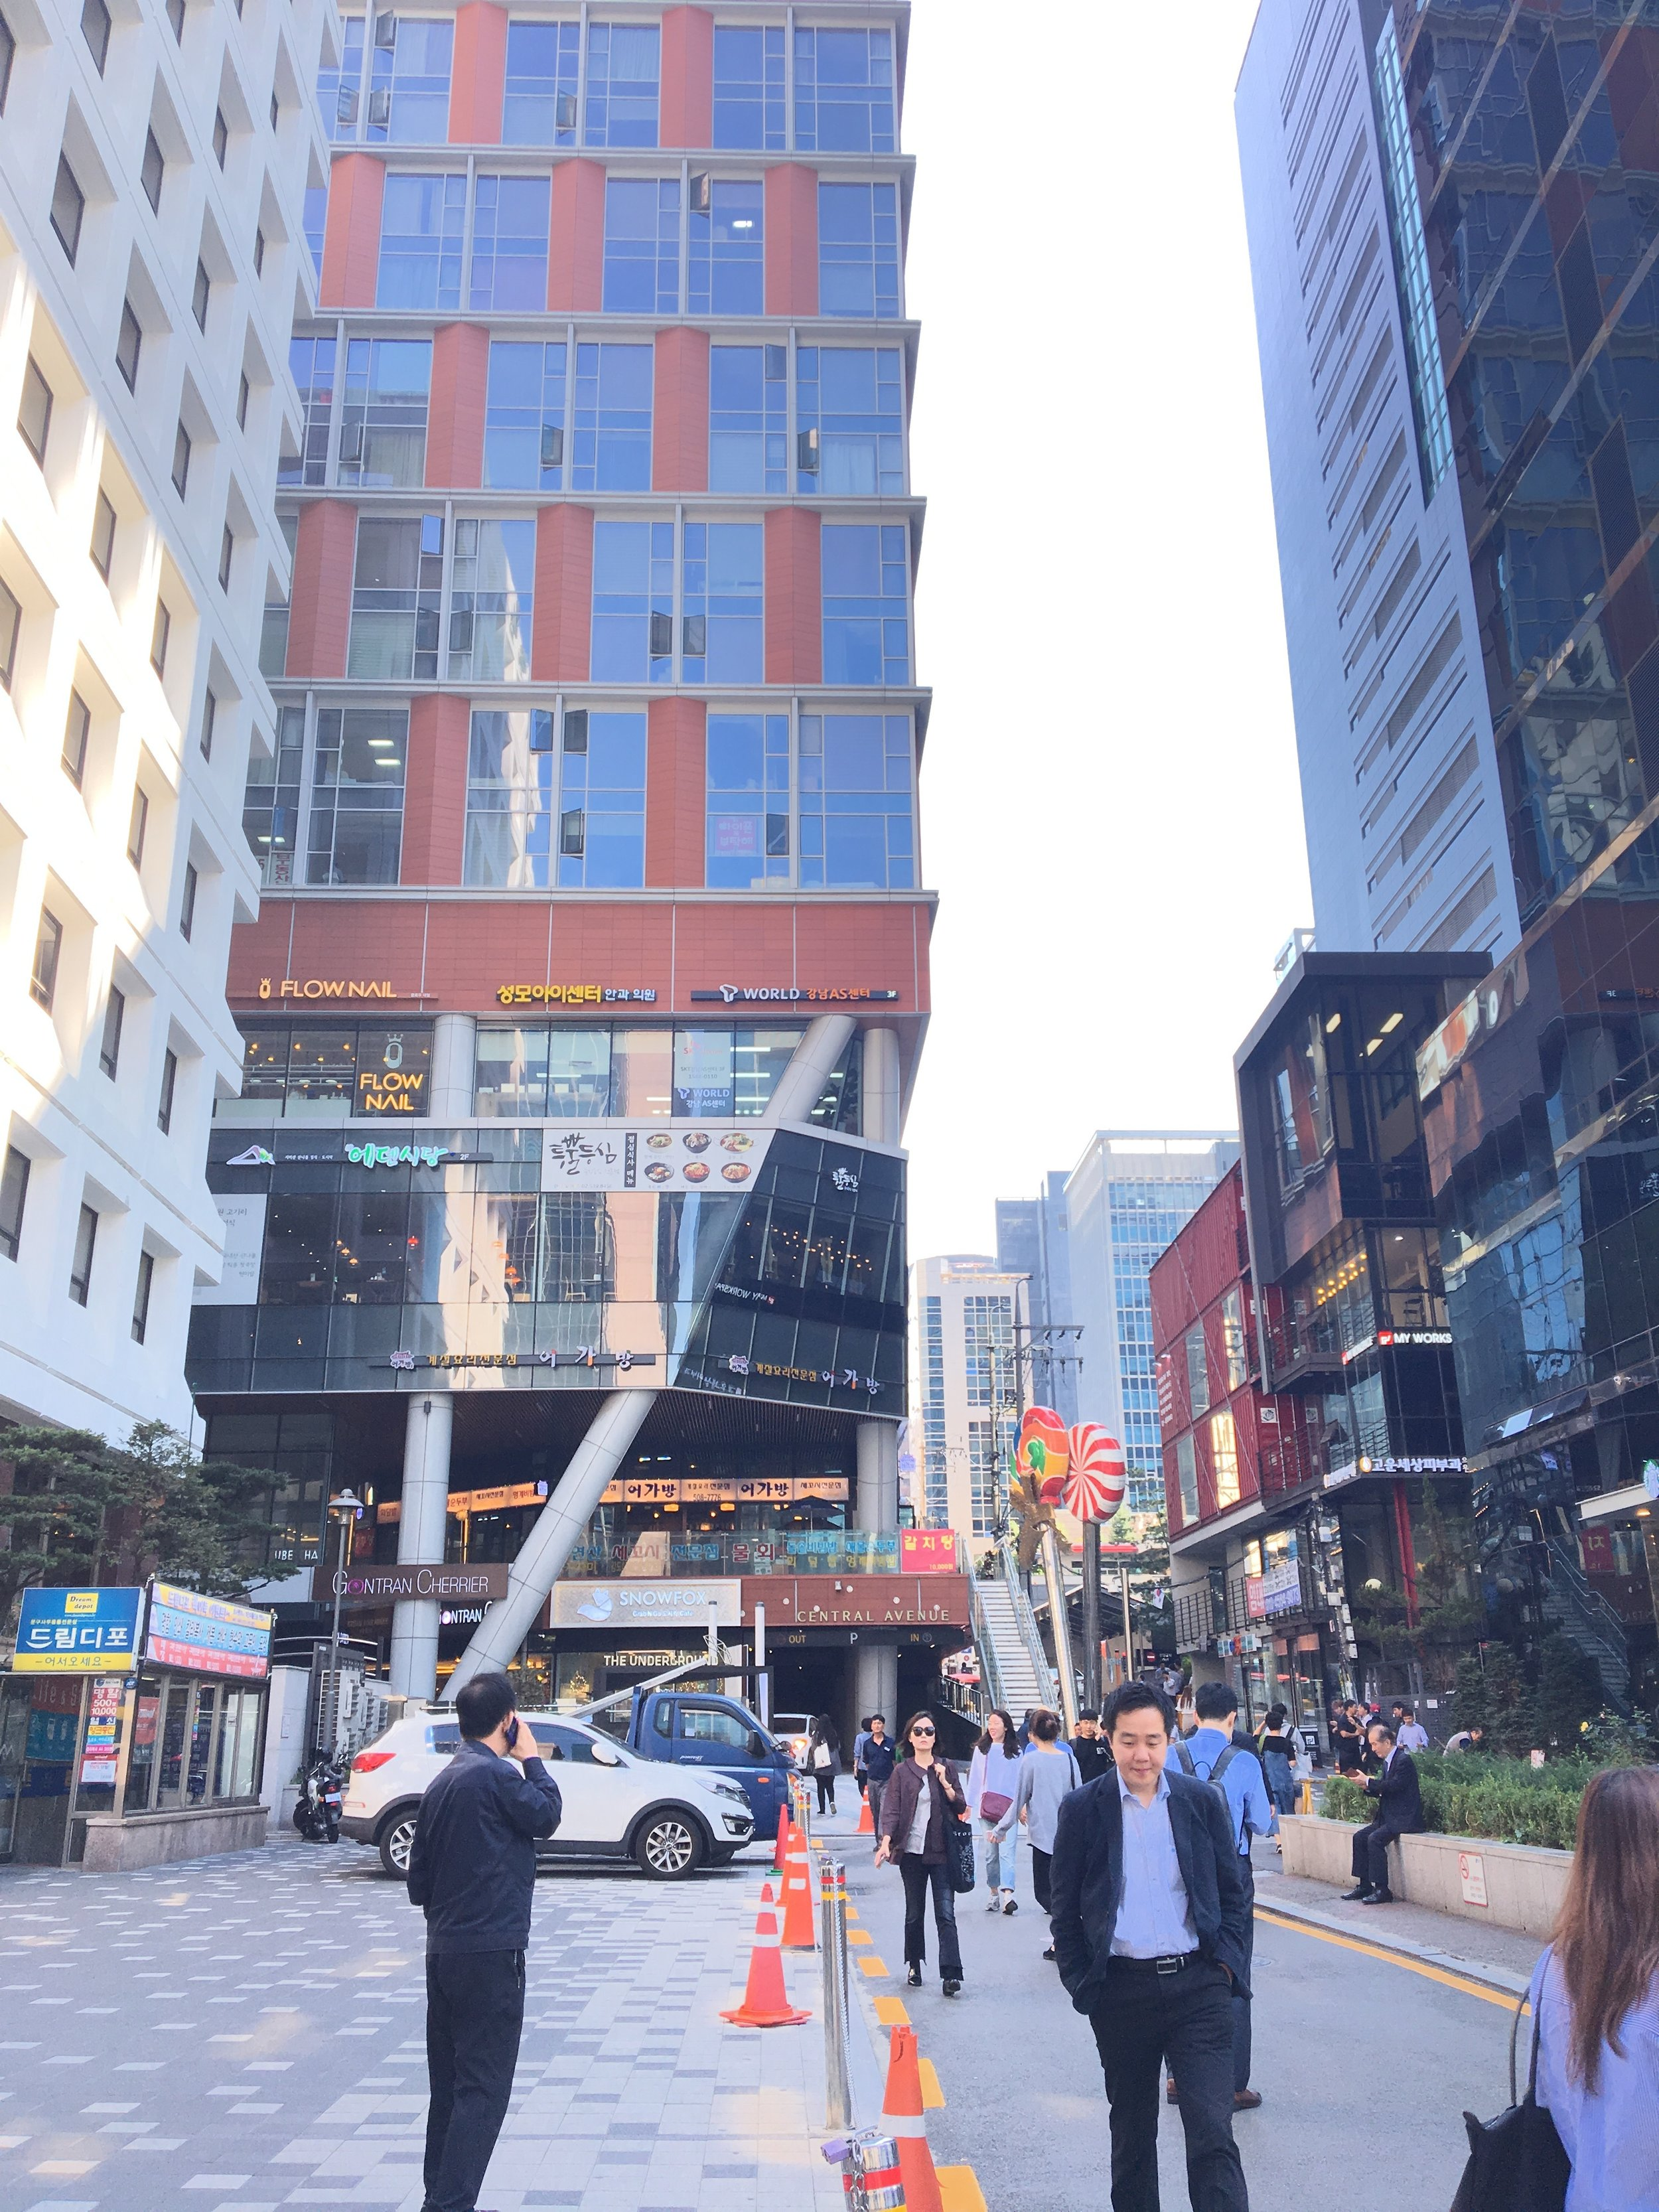 4. Brownish building is Mike homes - You can see brownish building in front of you. You will pass great Starbucks on your right. When you reach to the building you will see